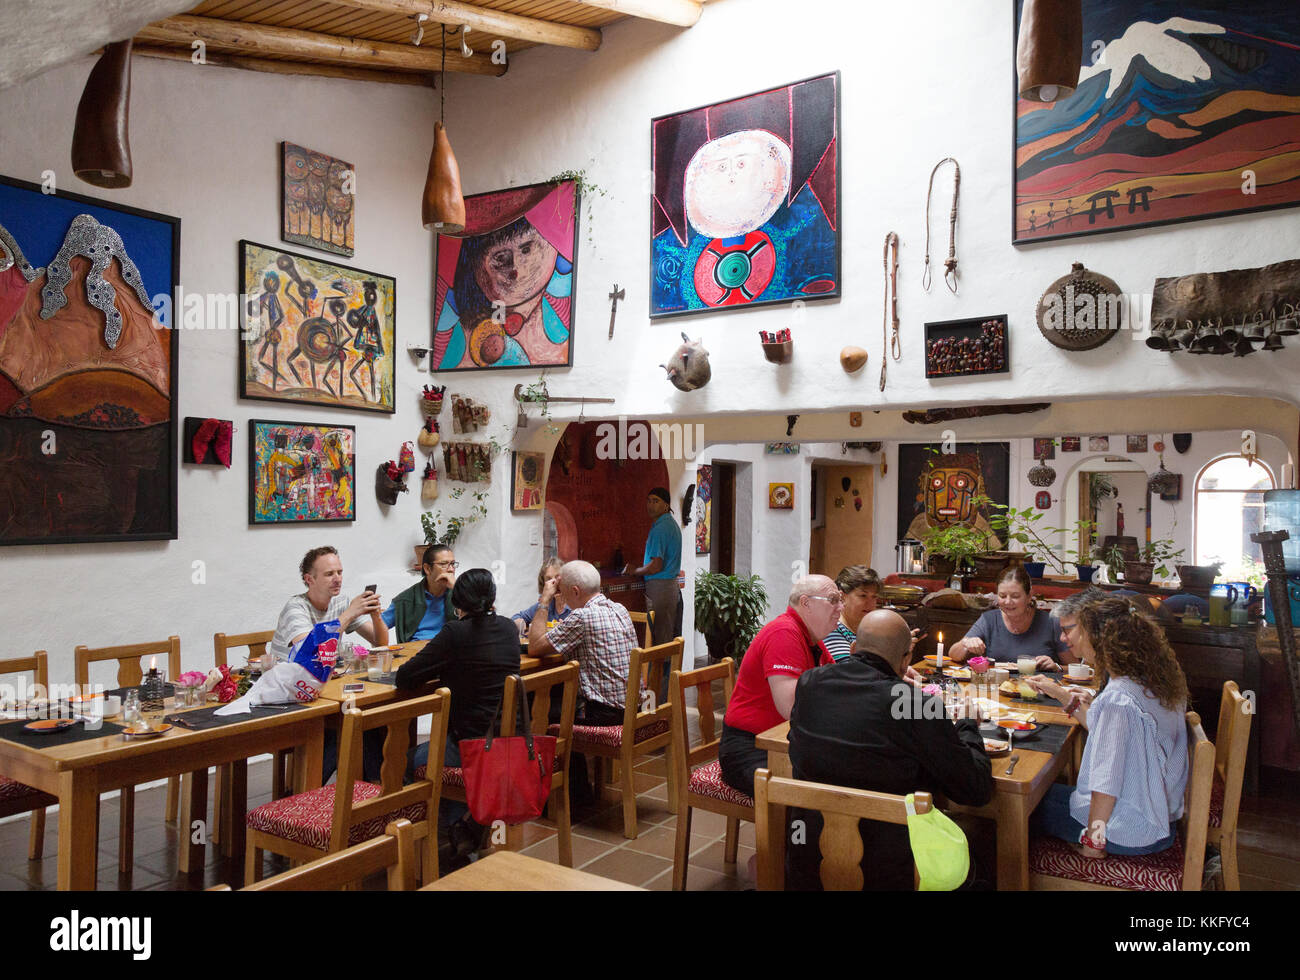 Ecuador hotel interior - hotel guests having a meal in the restaurant, Hosteria Pantavi, Otavalo, Ecuador South - Stock Image